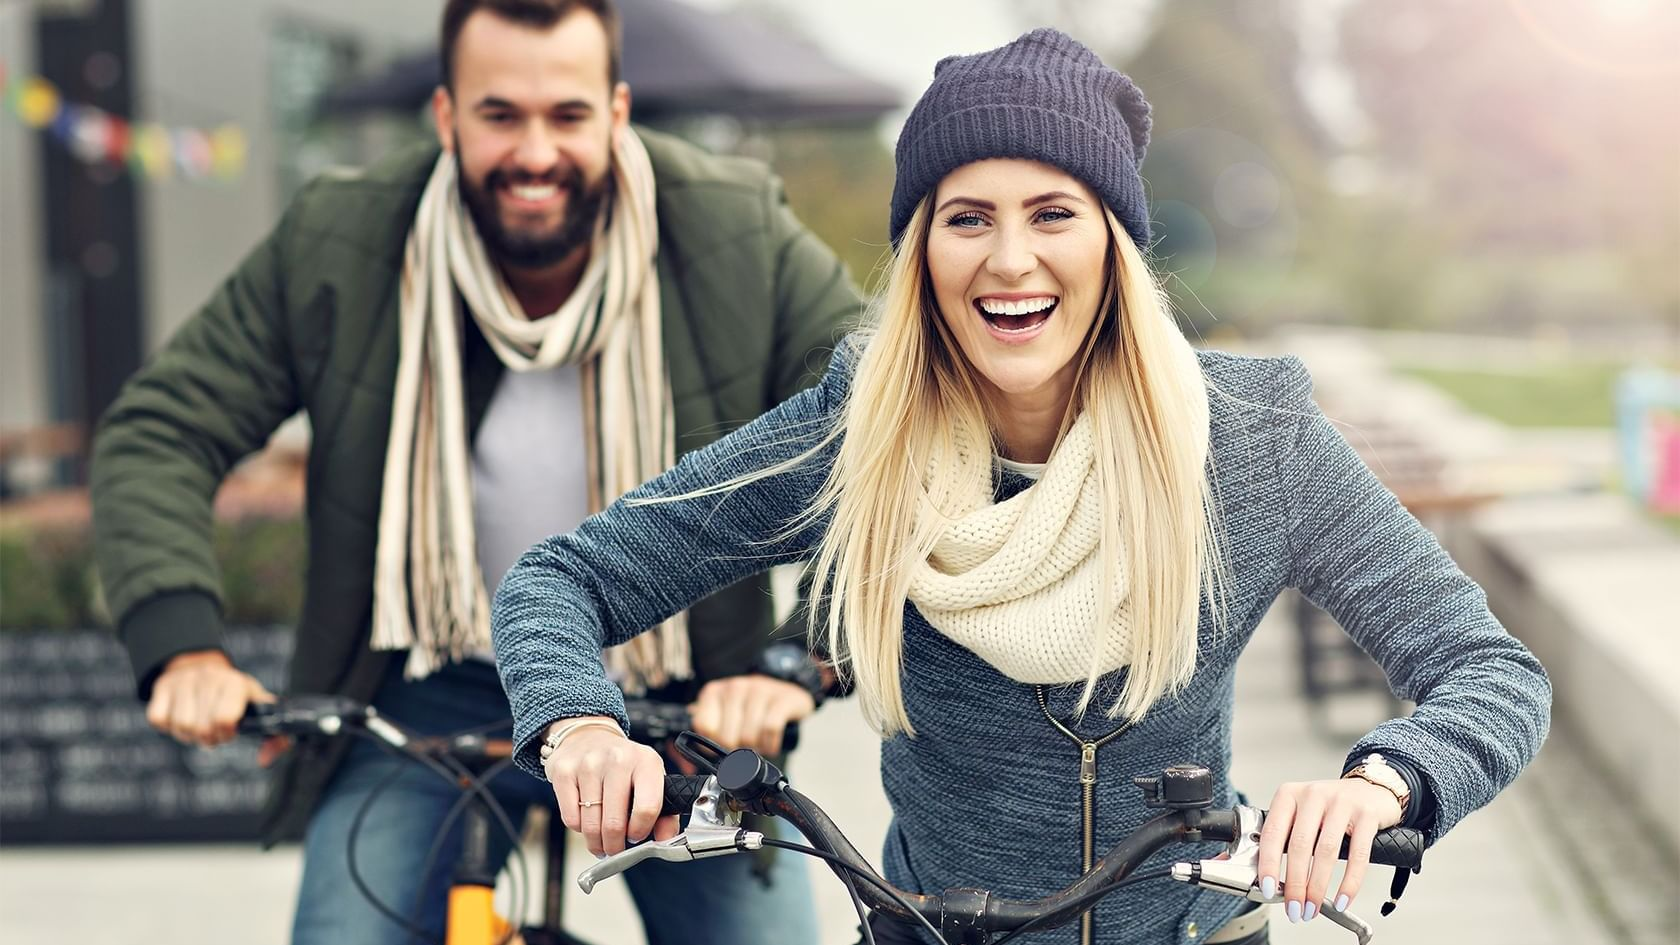 a man and woman riding bikes